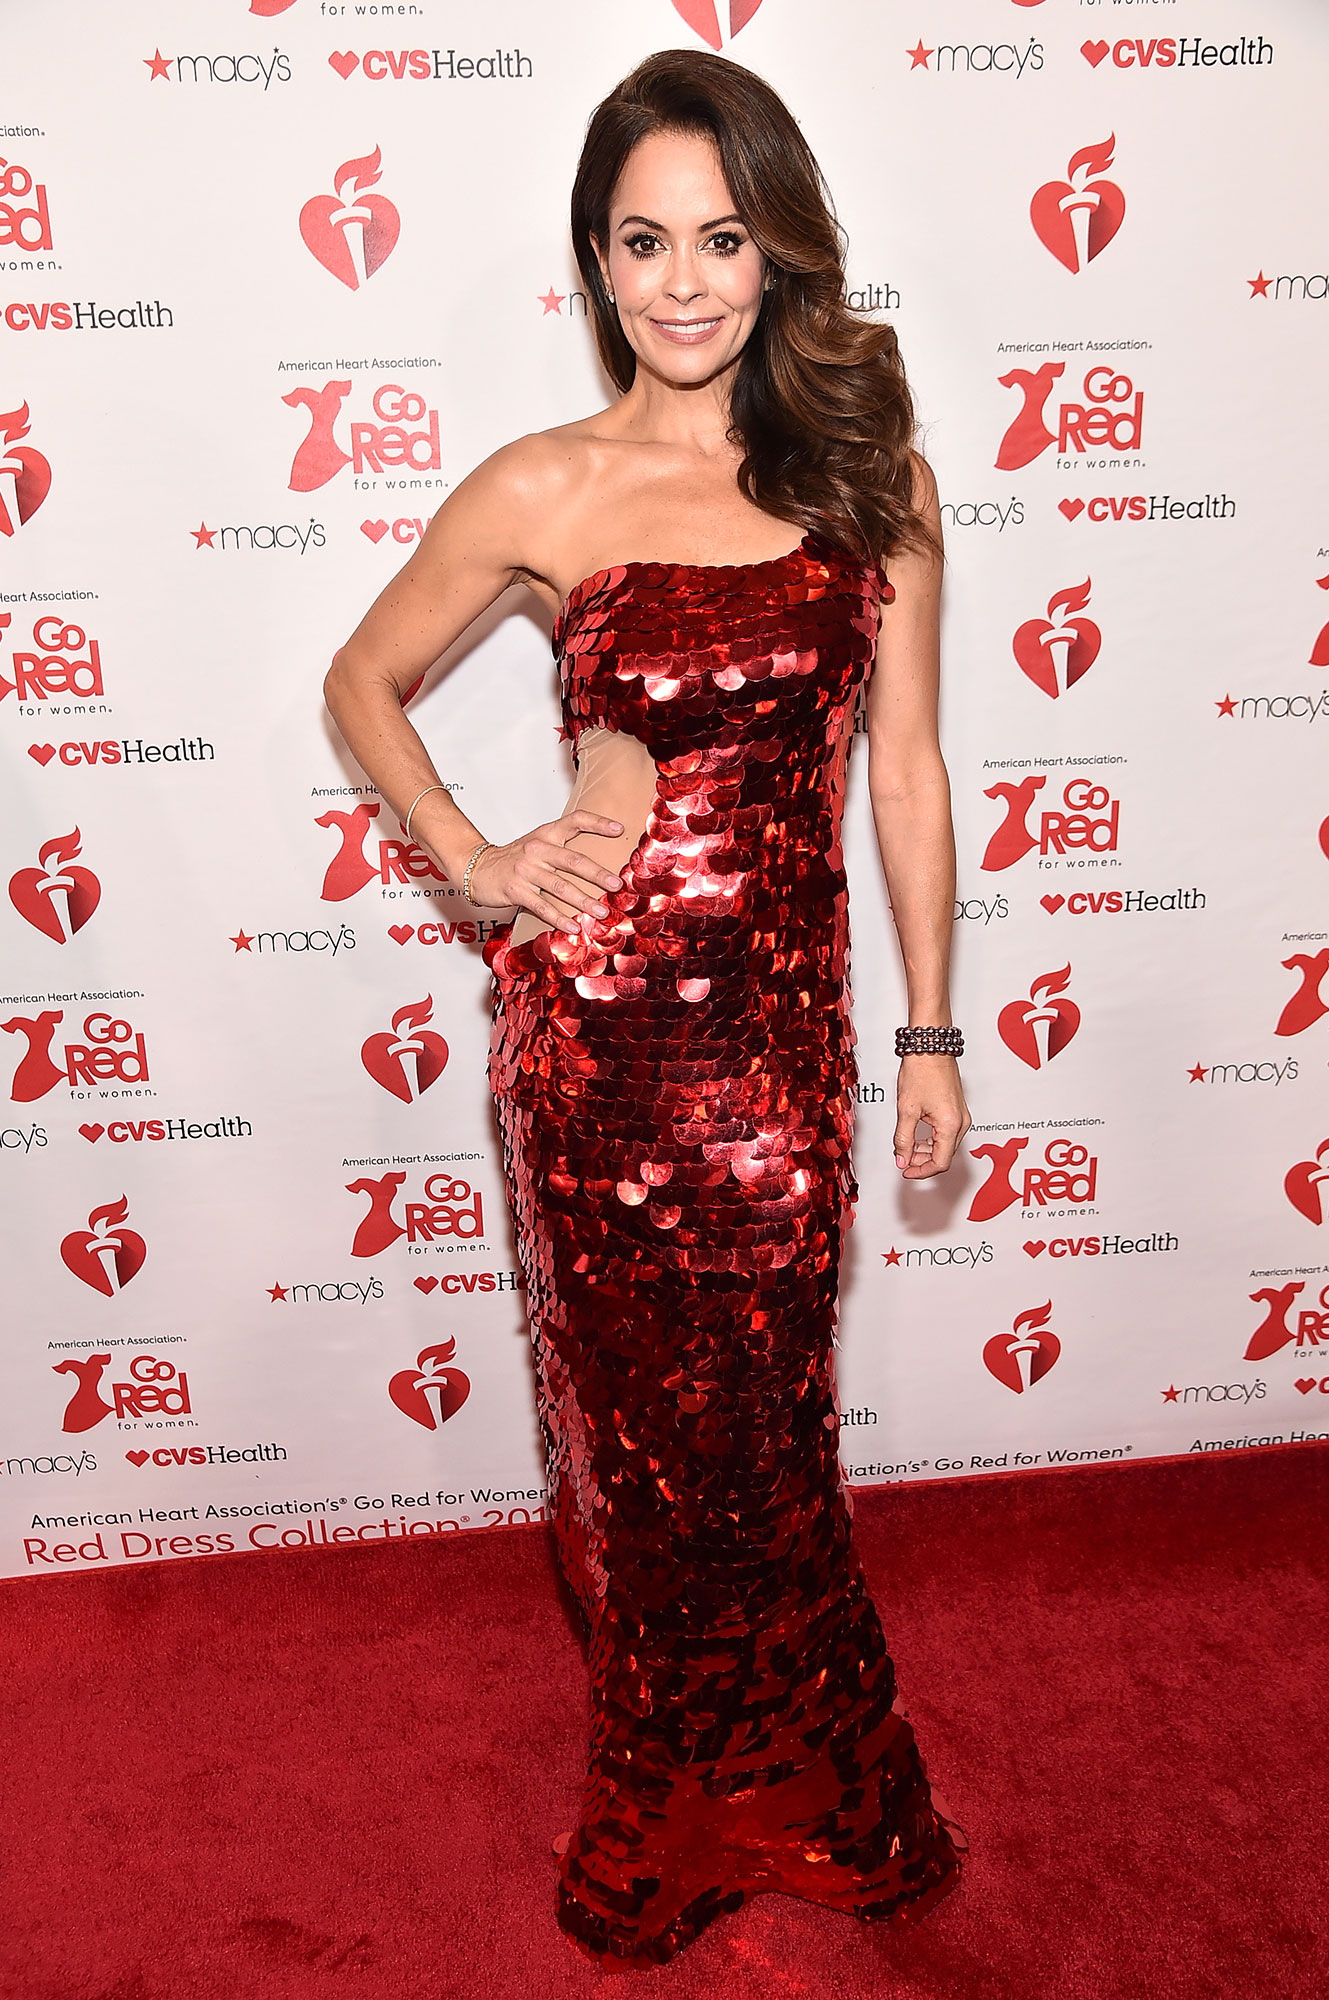 Brooke Burke Reveals Key to Parenting 4 Kids - Brooke Burke attends The American Heart Association's Go Red For Women Red Dress Collection 2019 Presented By Macy's at Hammerstein Ballroom on February 7, 2019 in New York City.